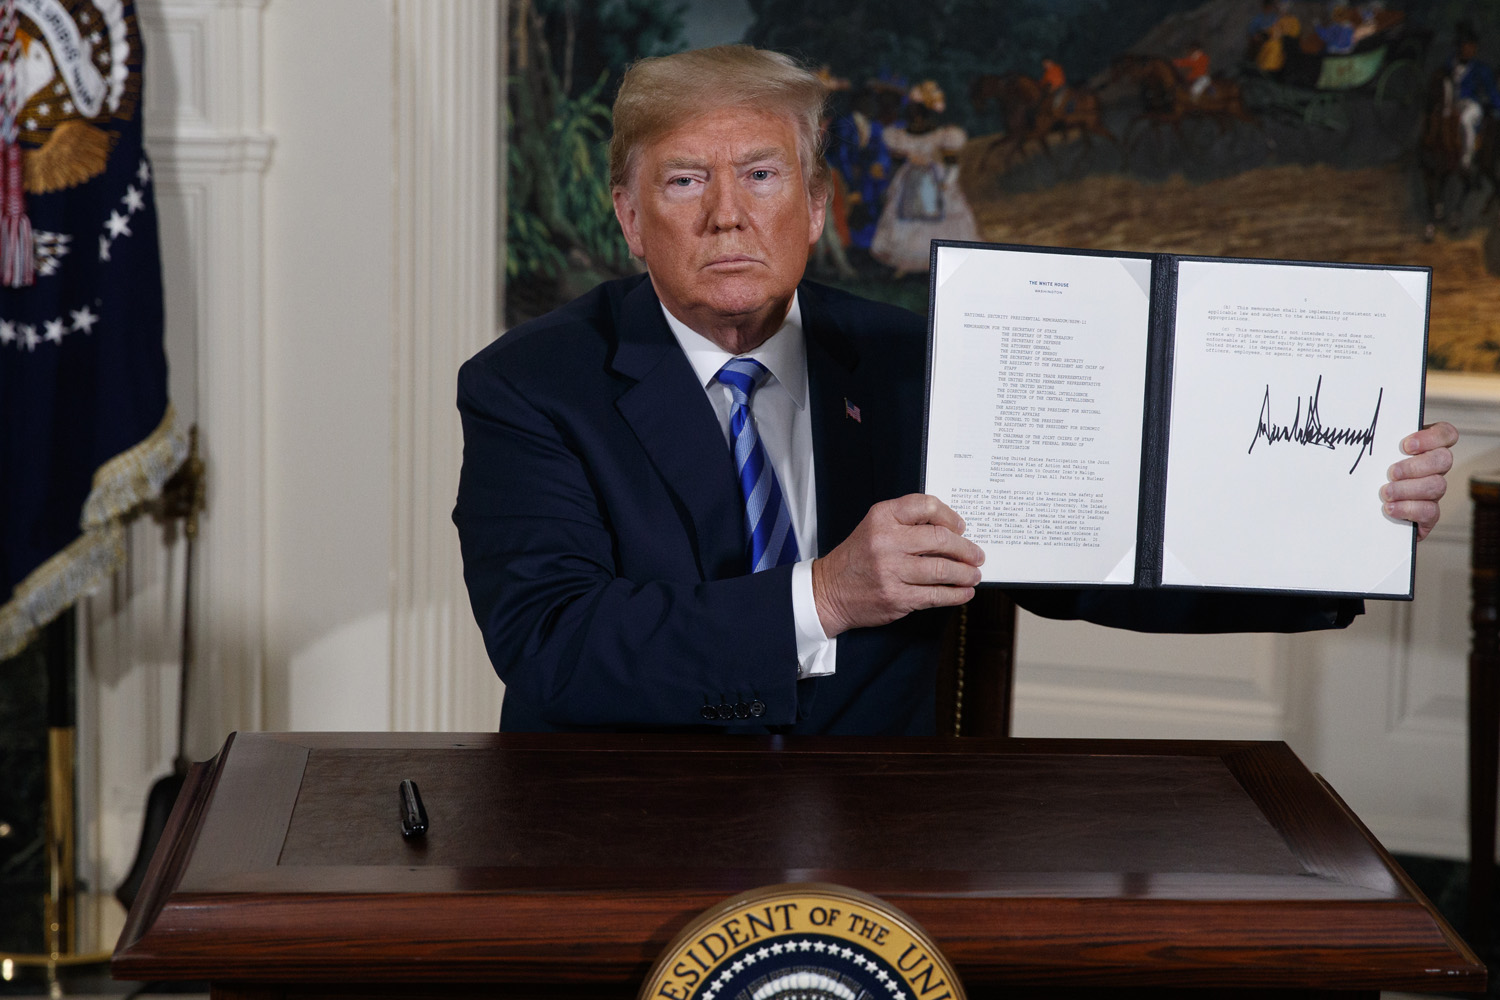 President Trump shows a signed Presidential Memorandum after delivering a statement on the Iran nuclear deal from the White House, Tuesday in Washington. (Evan Vucci/AP)